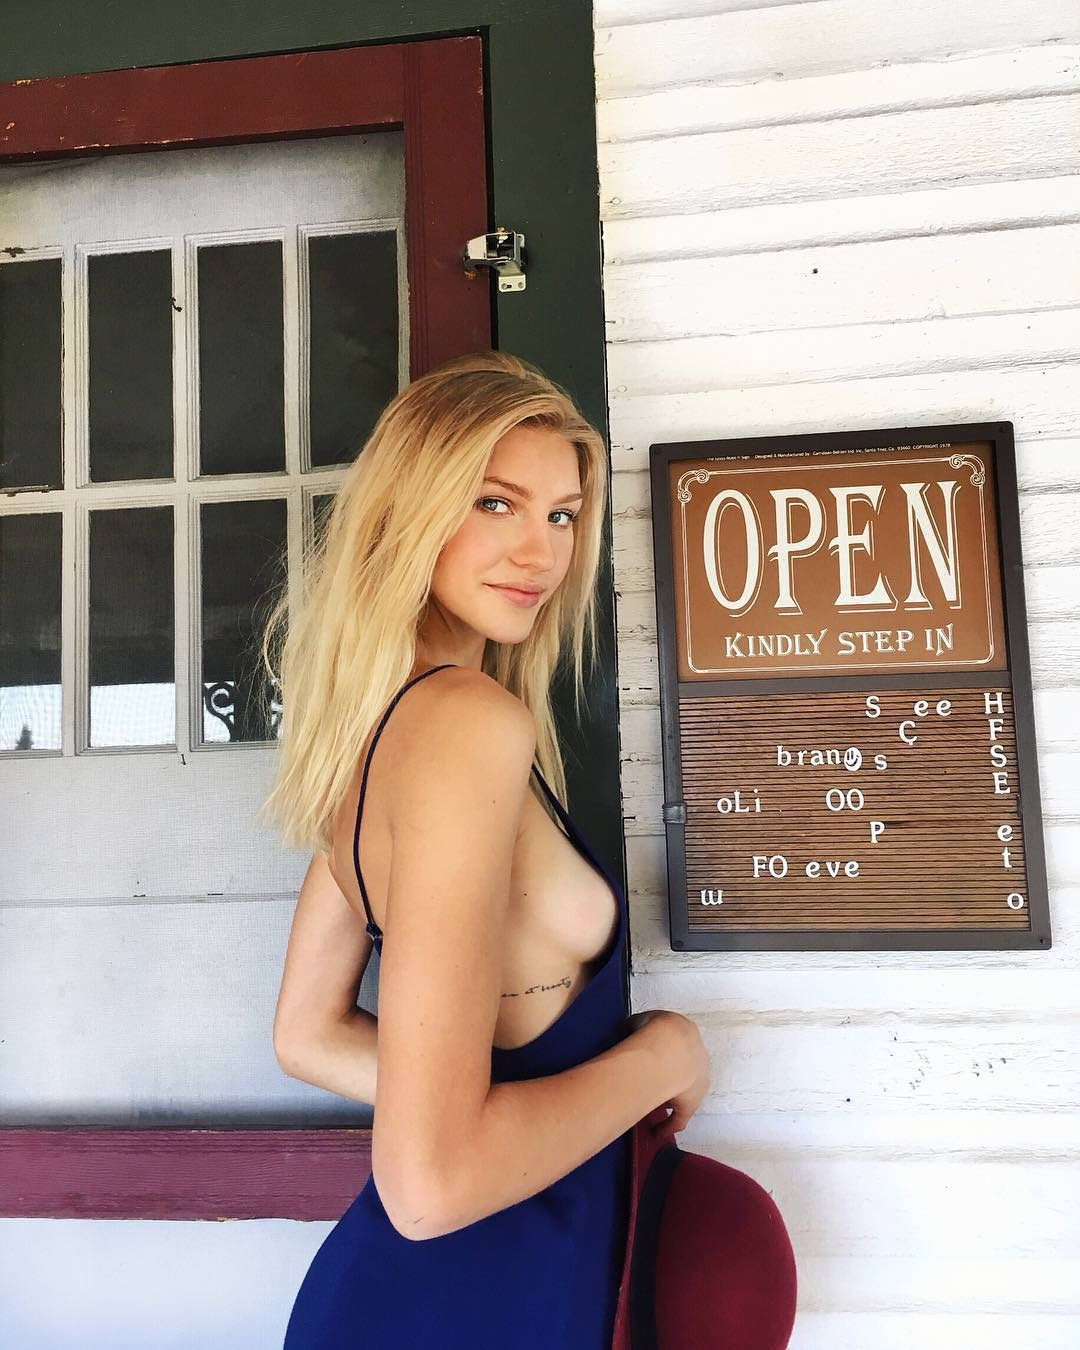 Tessa Greiner nudes (12 fotos), hot Boobs, Twitter, braless 2016